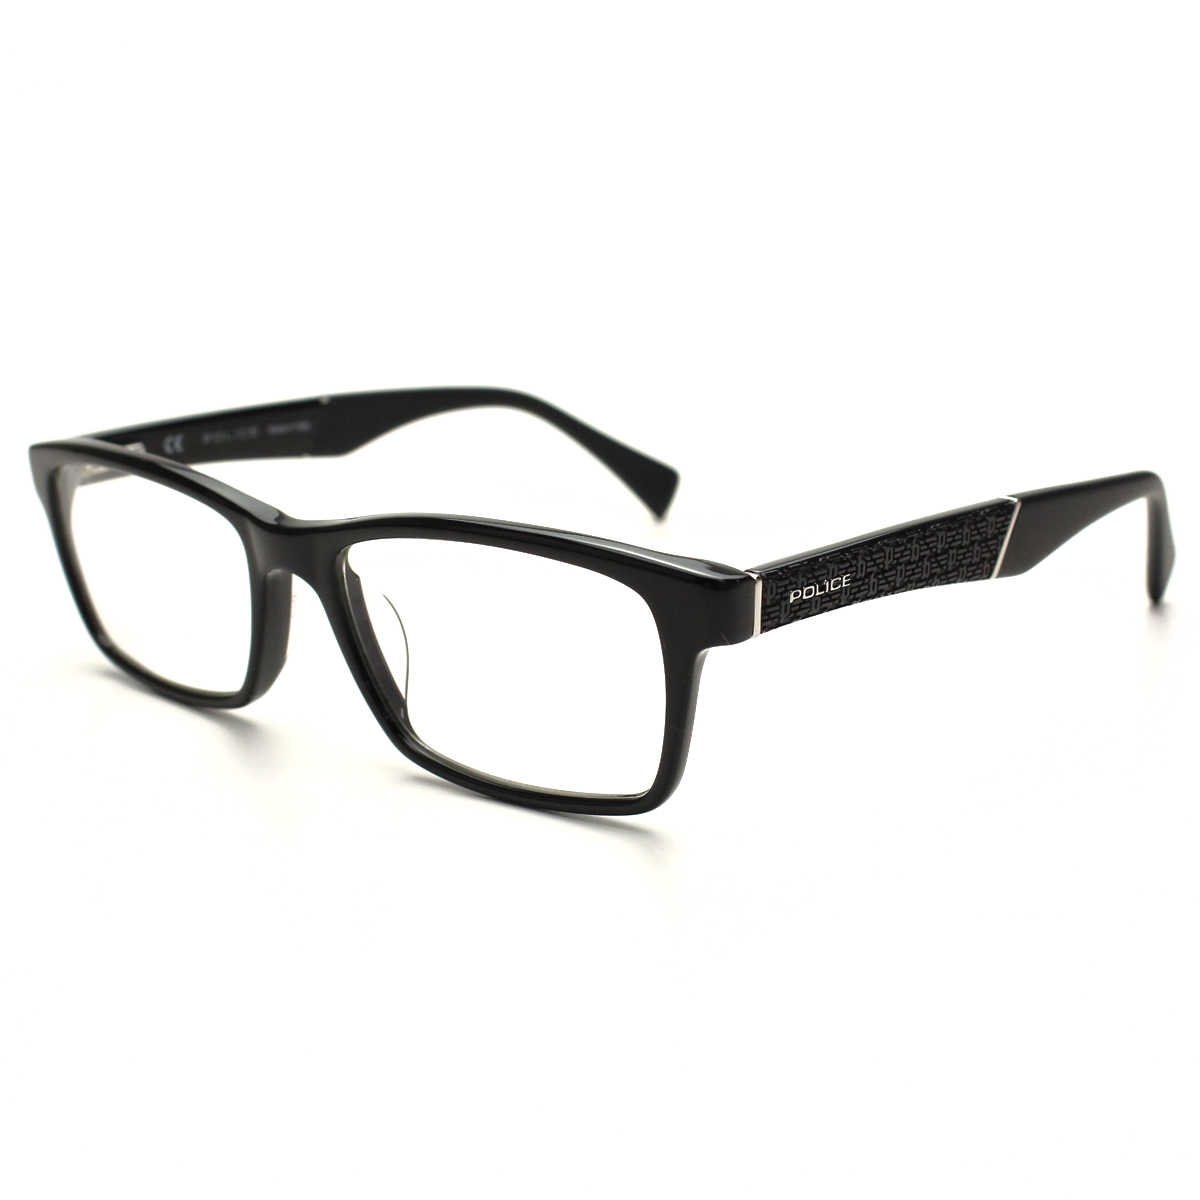 eb6fbd1d57c5 Bighit The total brand wholesale  Polis (POLICE) black glasses V1919  (M)-700 (53)( taxfree send by EMS authentic A brand new item )